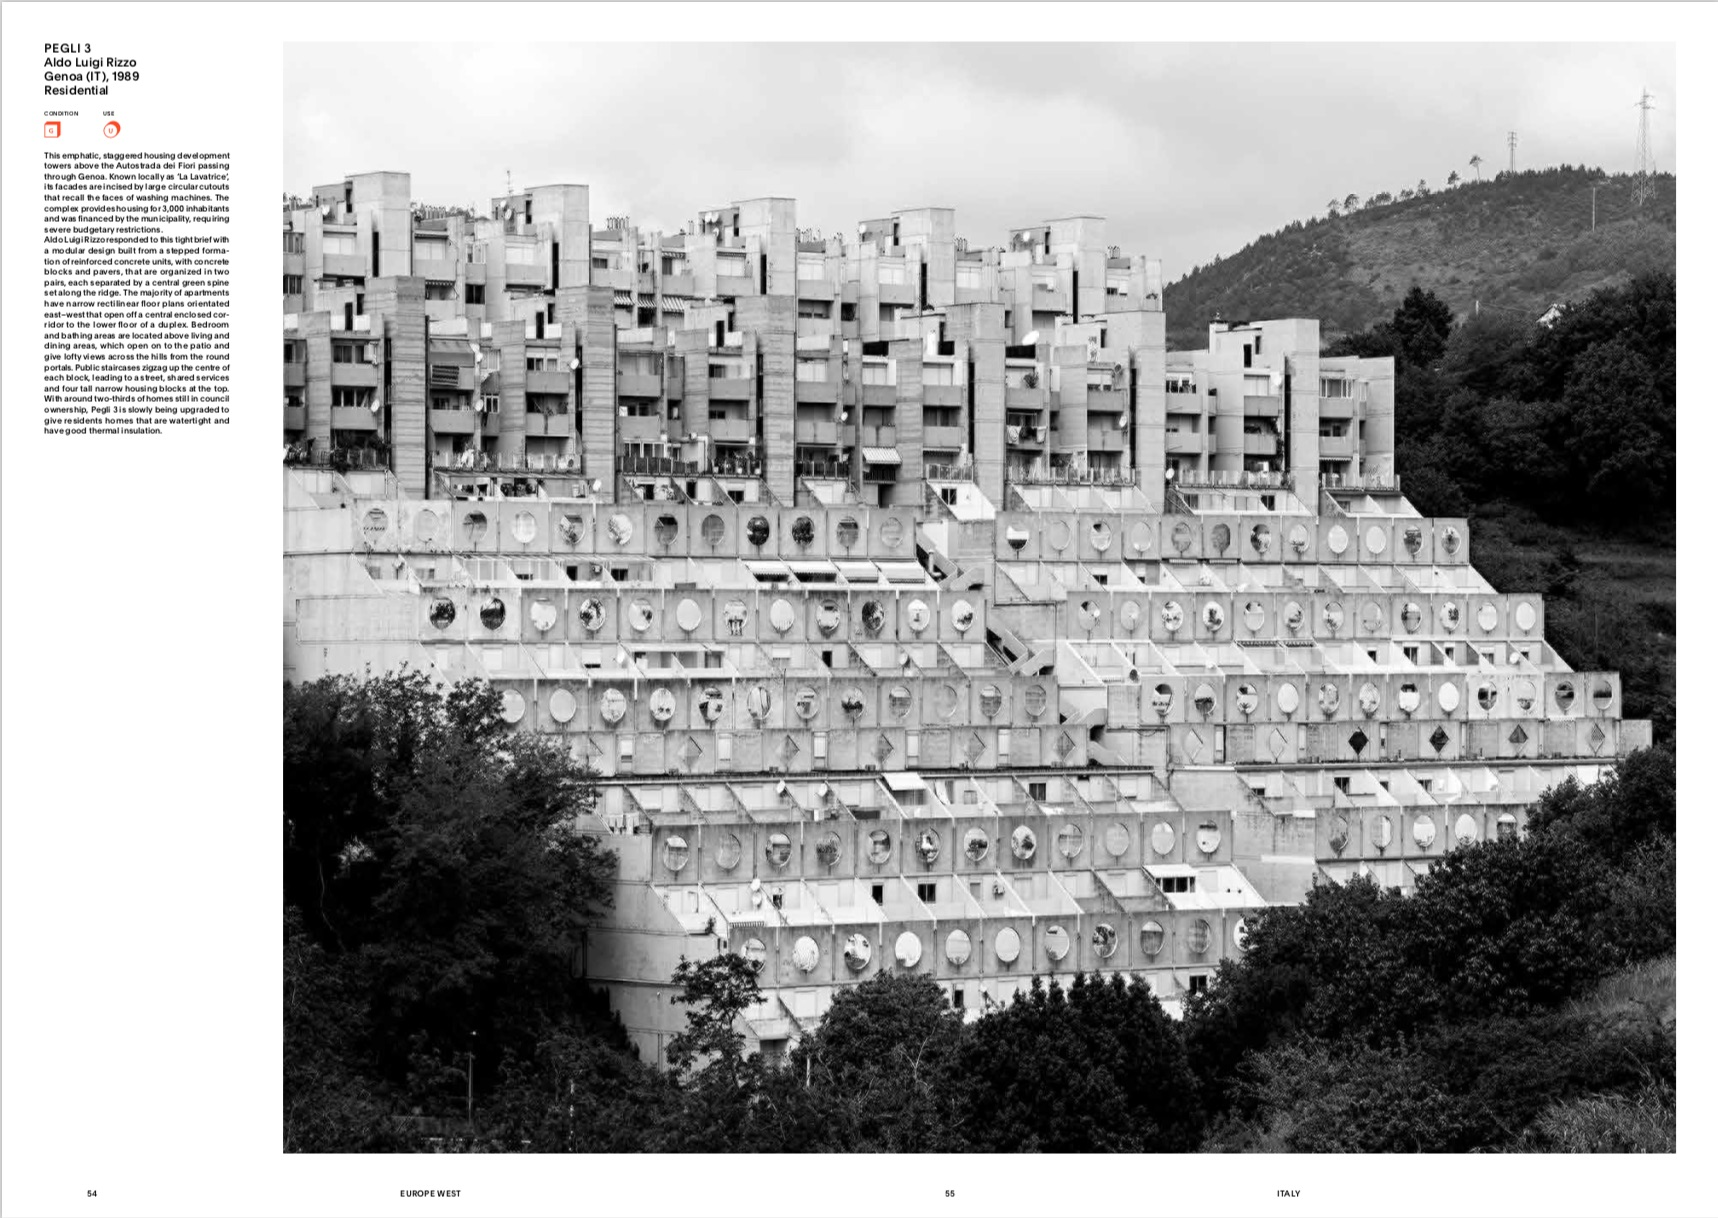 By The Editors of Phaidon Press from Atlas of Brutalist Architecture copyright Phaidon 2018